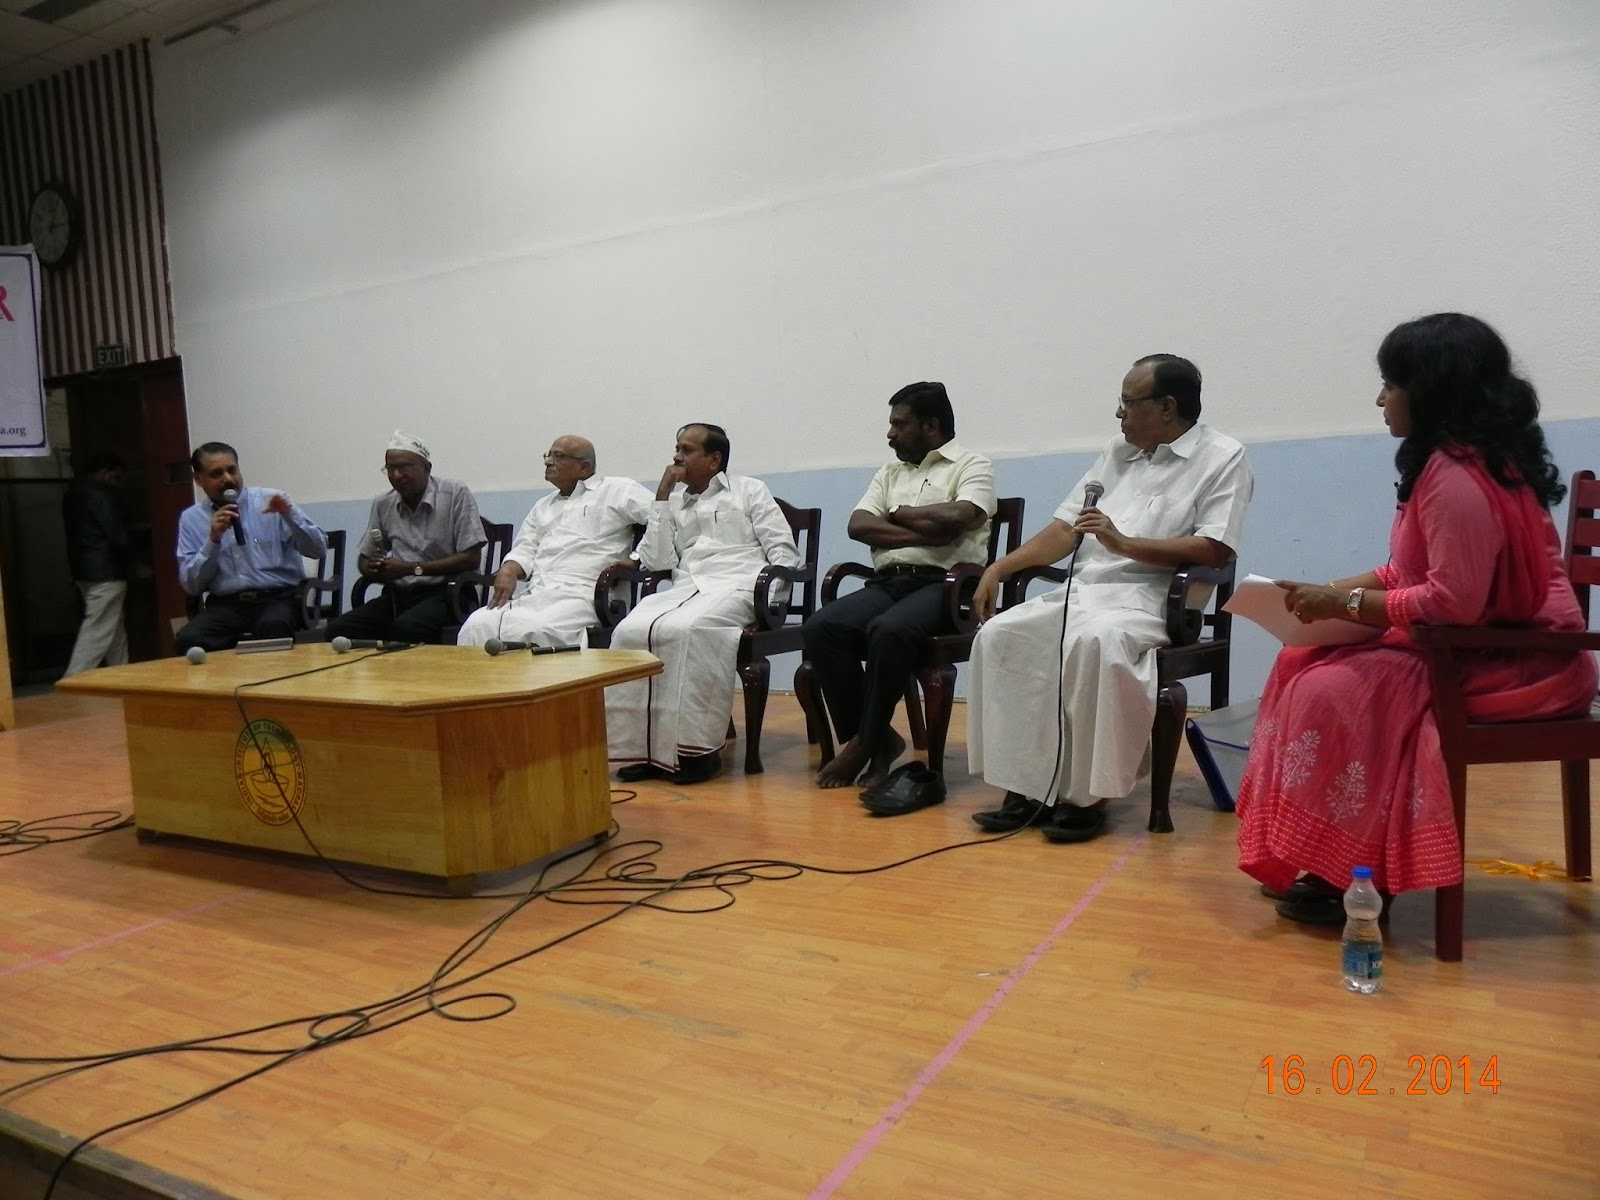 (L to R) Maalan, David,  T K Rangrajan MP,  H Raja, Thol Thirumavalavan MP,  Gobanna and Bhanu Gomes